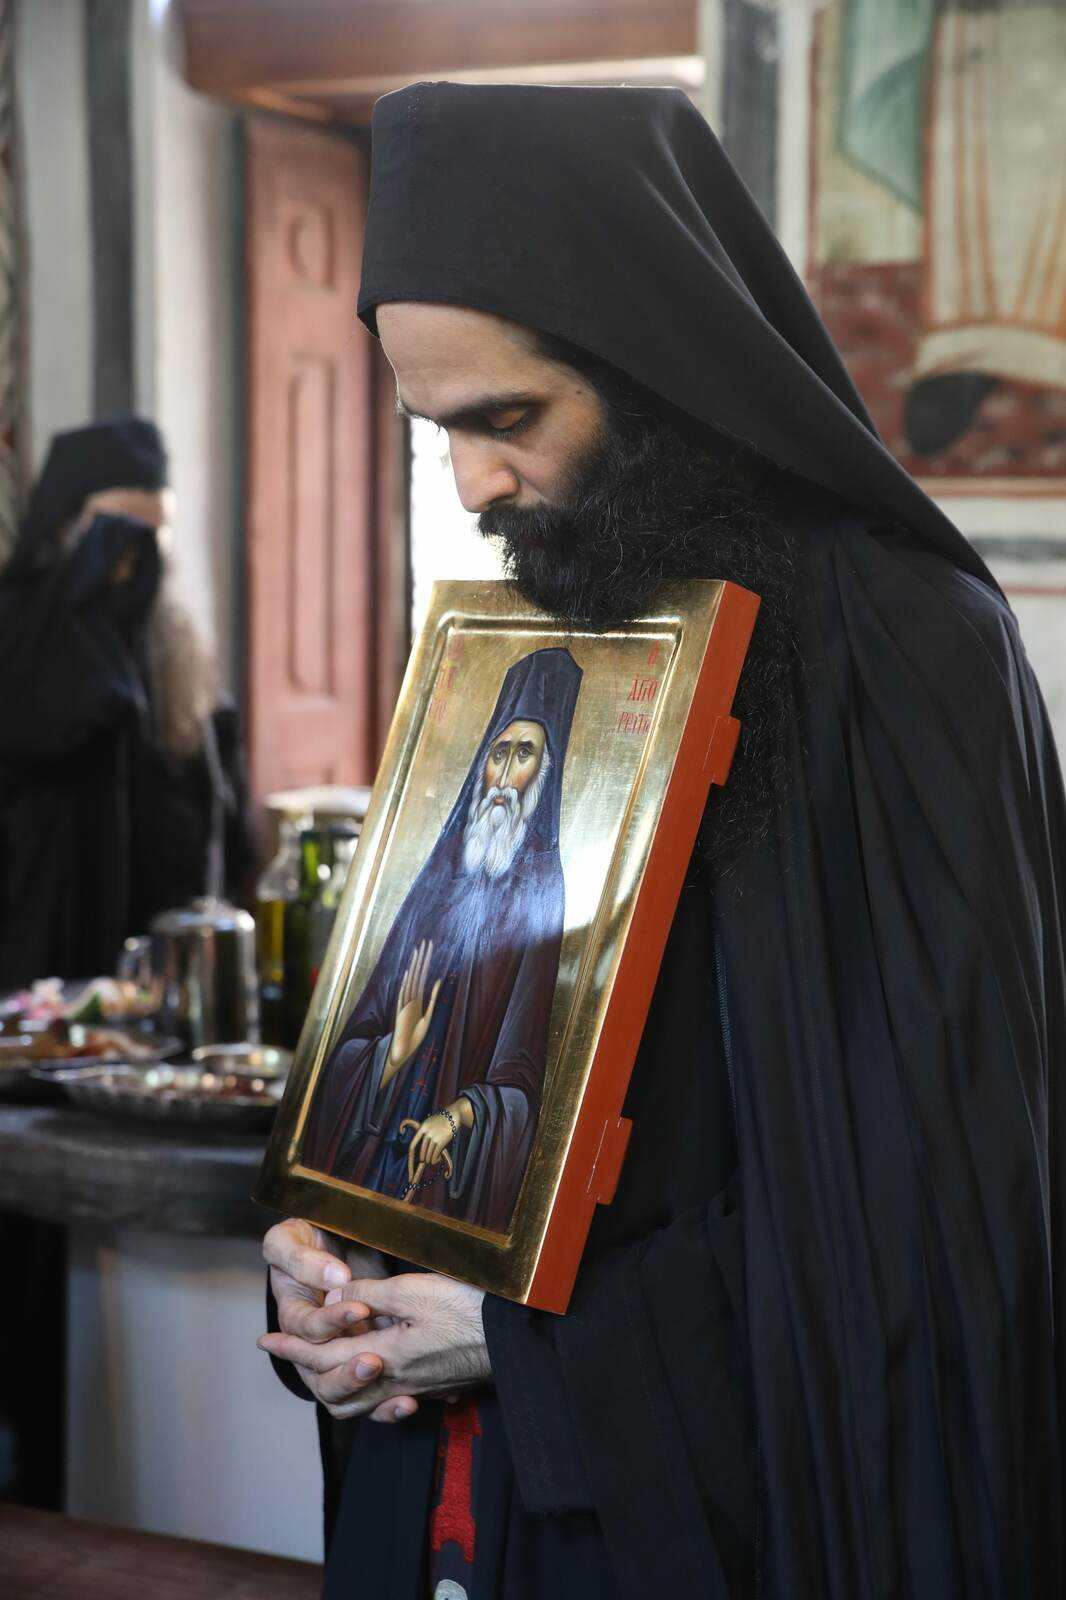 The presiding priest in the refectory with the icon of St Paisios.